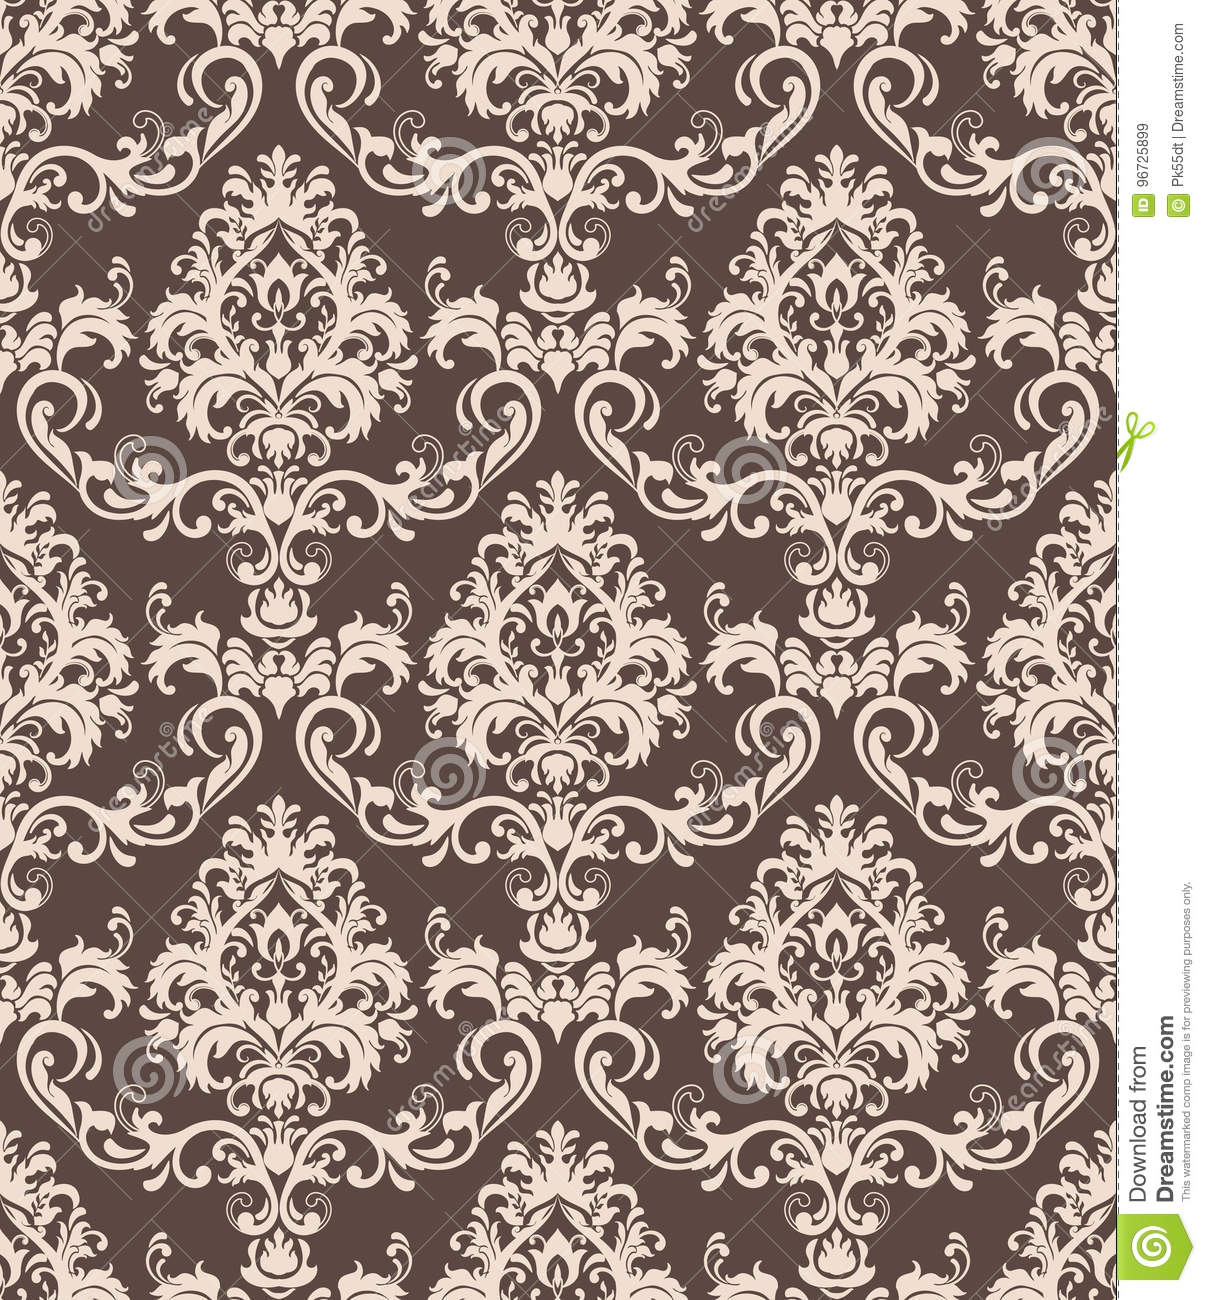 Hand drawing tile vintage color seamless pattern. Italian majolica style.  Vector illustration.